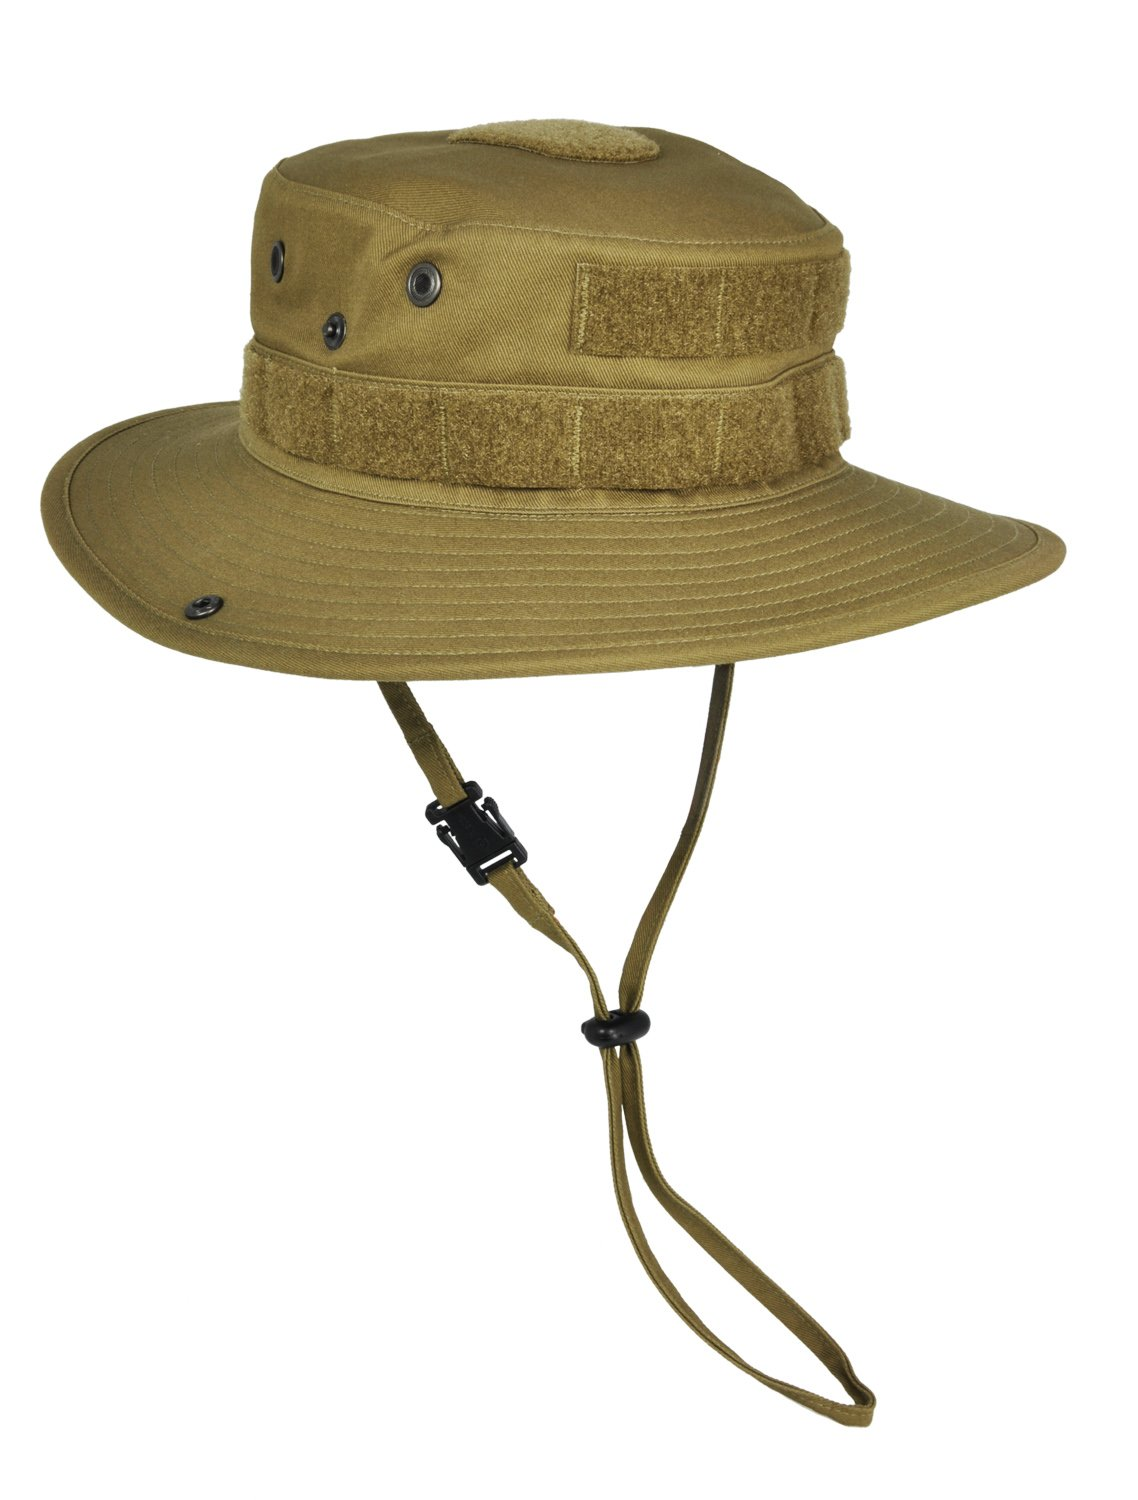 HAZARD 4 SunTac Cotton Boonie Hat with Molle, Coyote, Regular